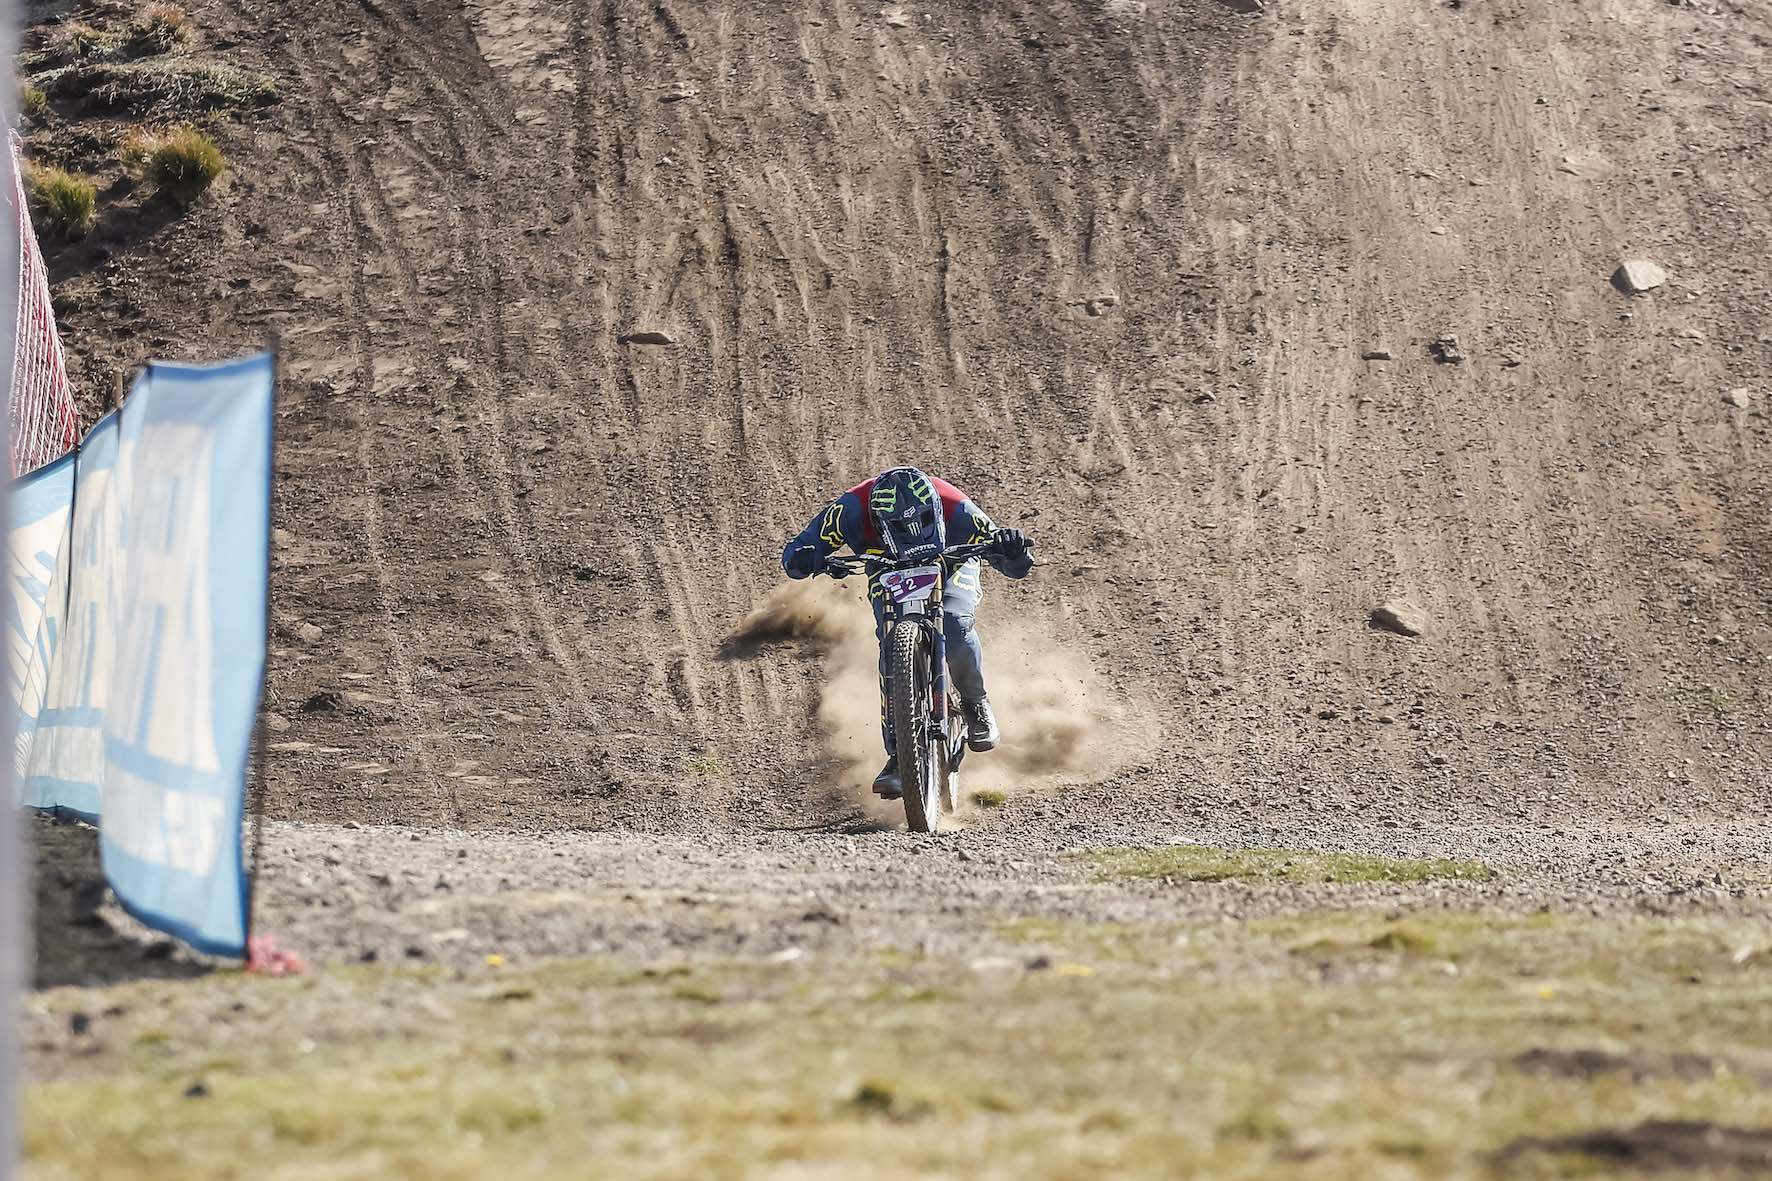 Interview with the 2019 SA Downhill MTB Champion, Theo Erlangsen